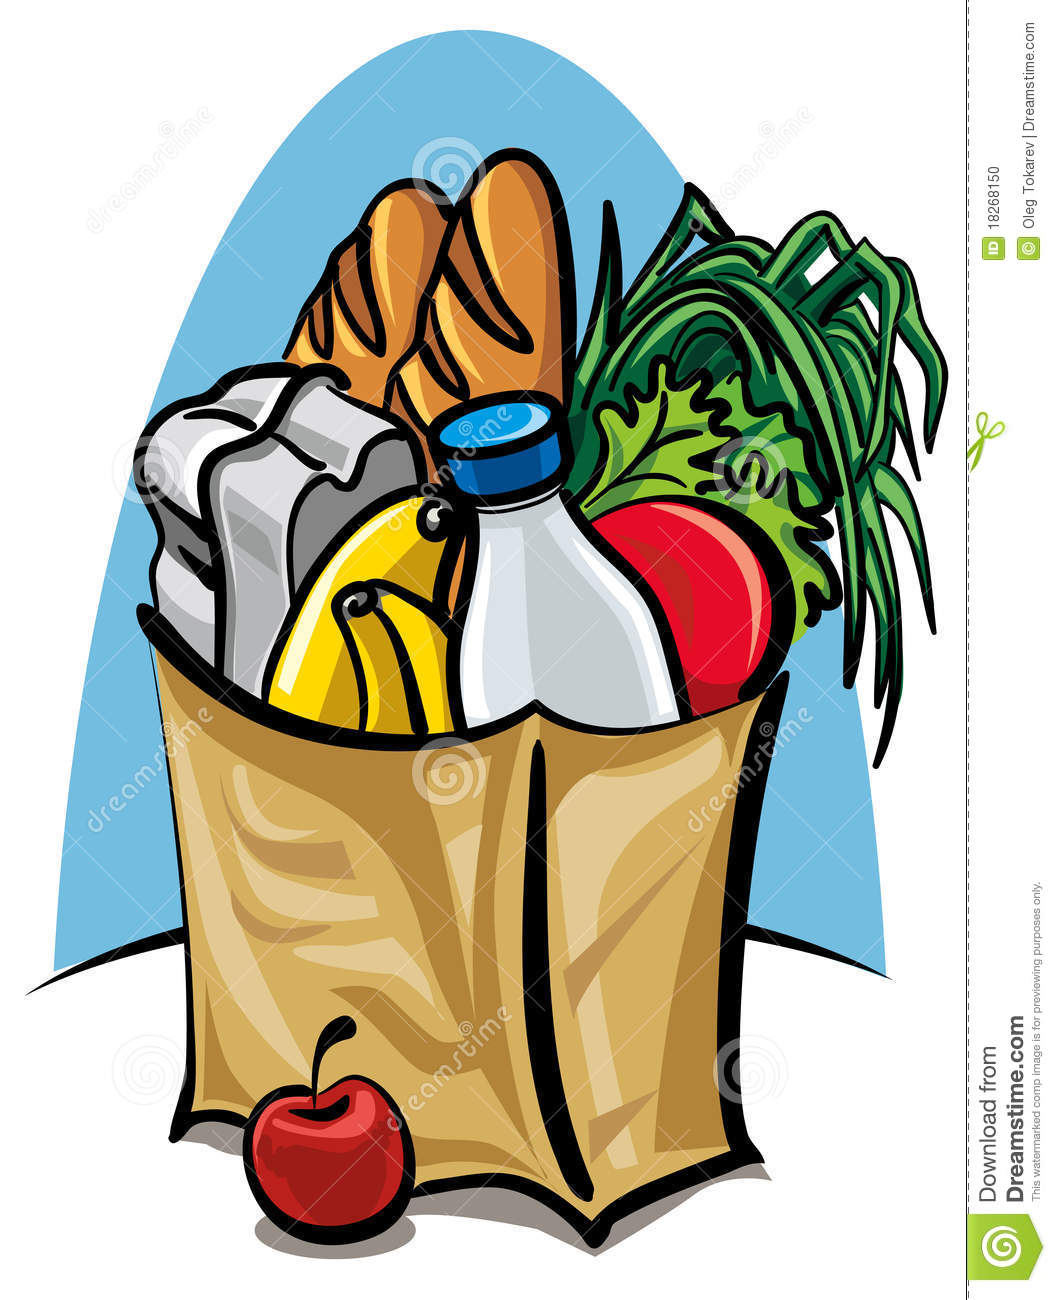 Grocery Shopping Clipart Shopping bag with food